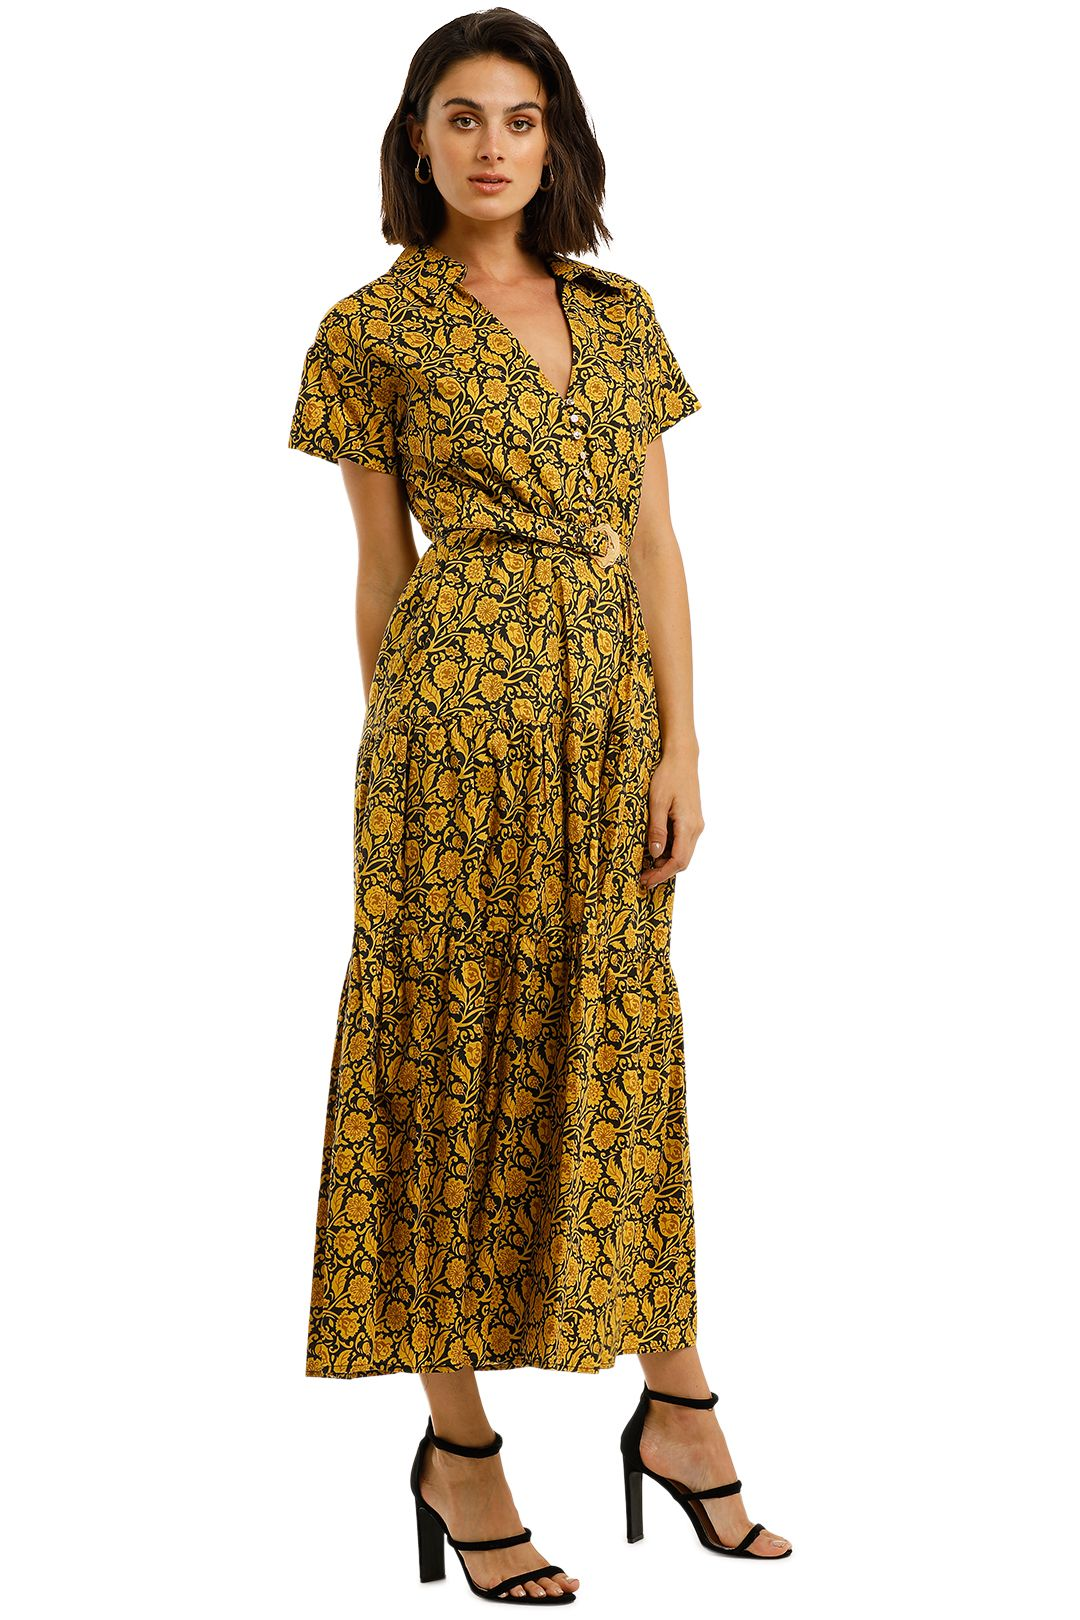 Nicholas-Amina-Dress-Confetti-Vine-Batik-Side